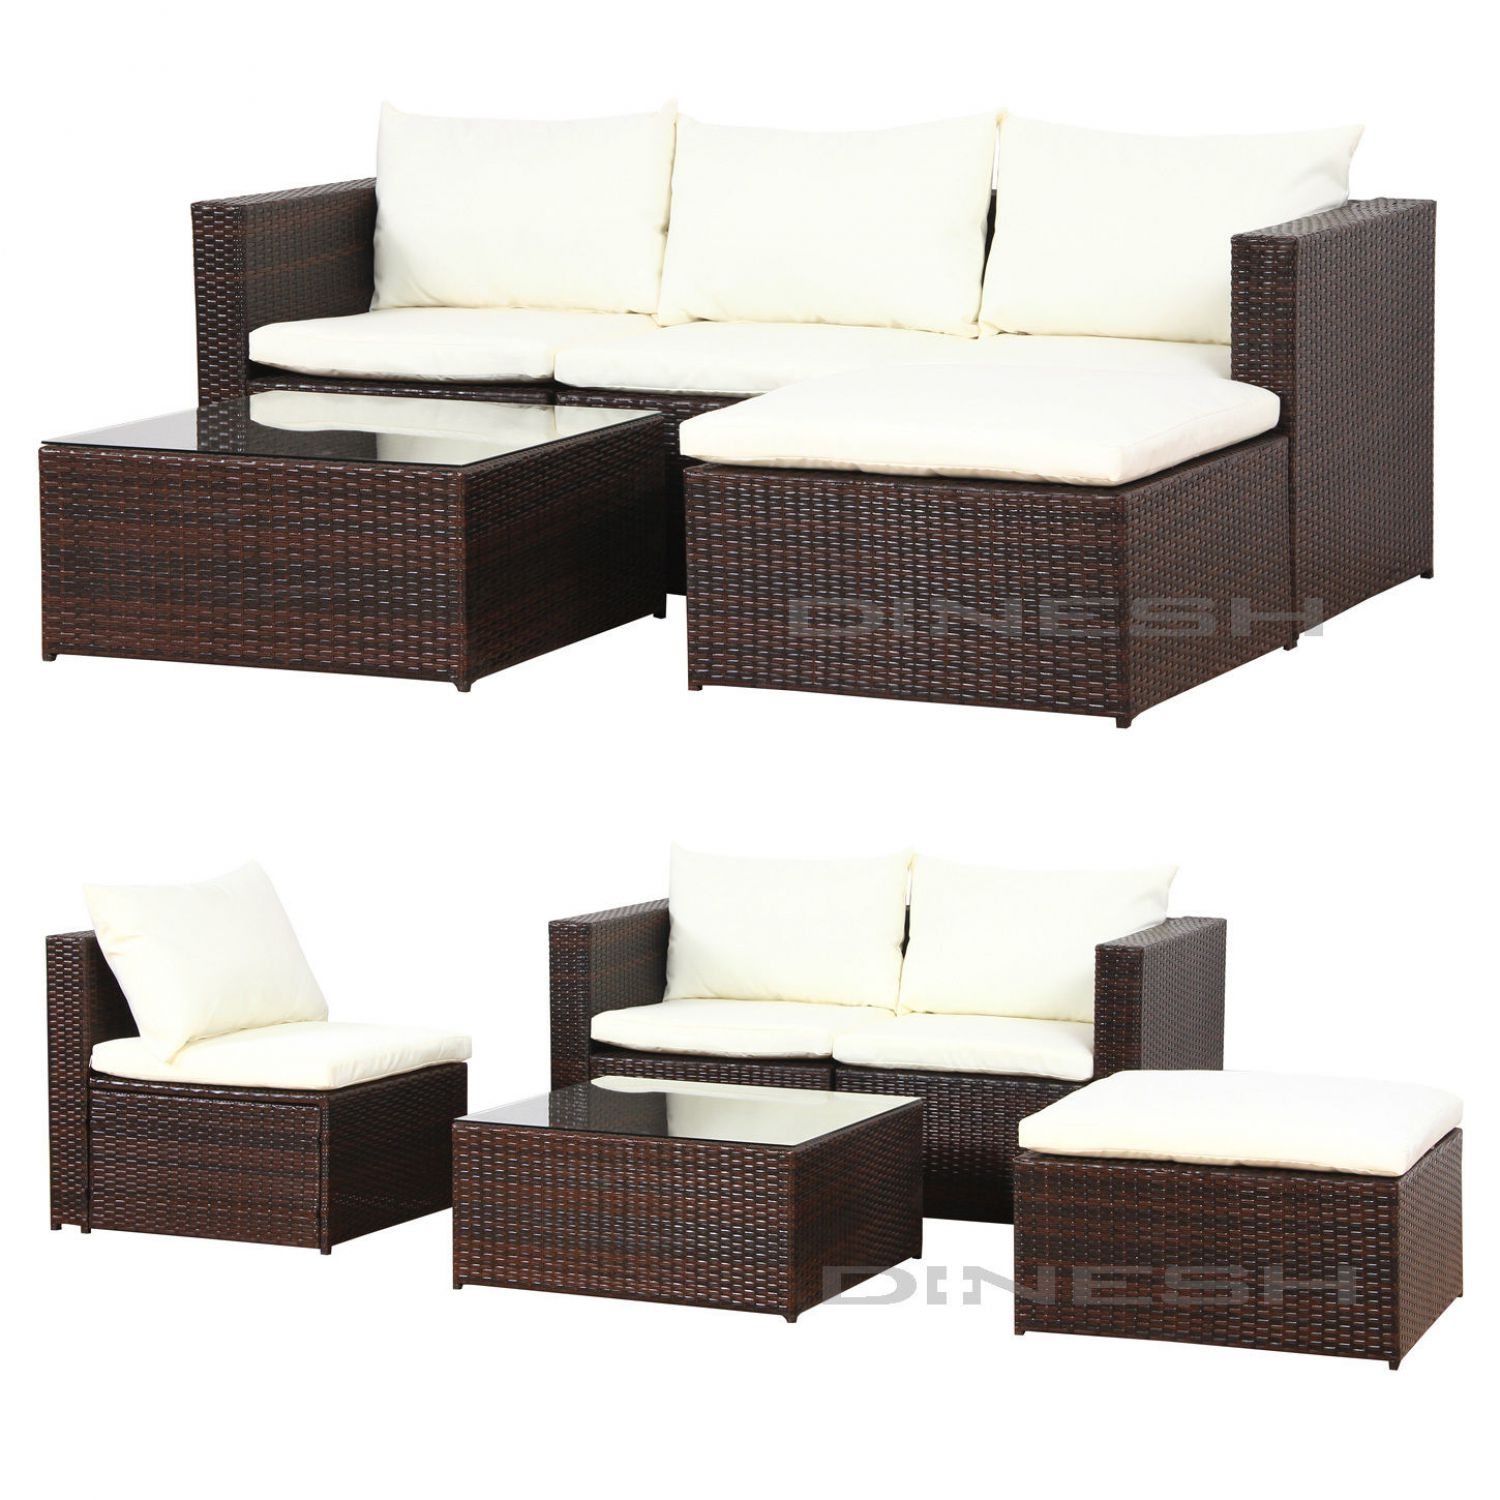 malaga poly rattan braun gartenm bel sitzgruppe essgruppe. Black Bedroom Furniture Sets. Home Design Ideas